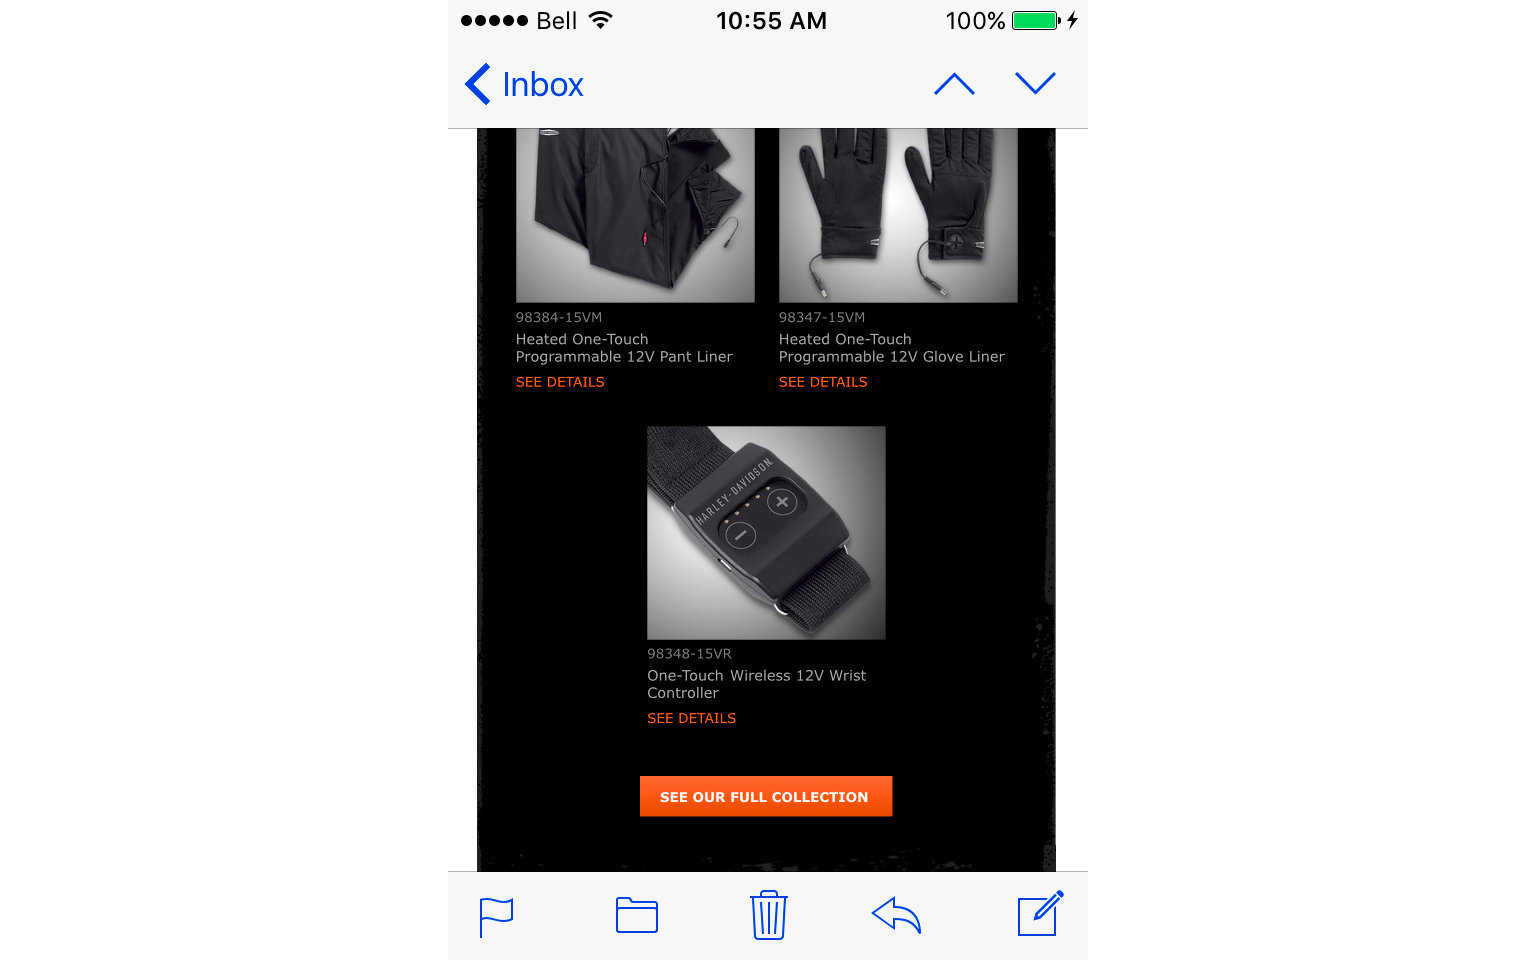 HARLEY-DAVIDSON ACCESSORIES EMAIL  4/10